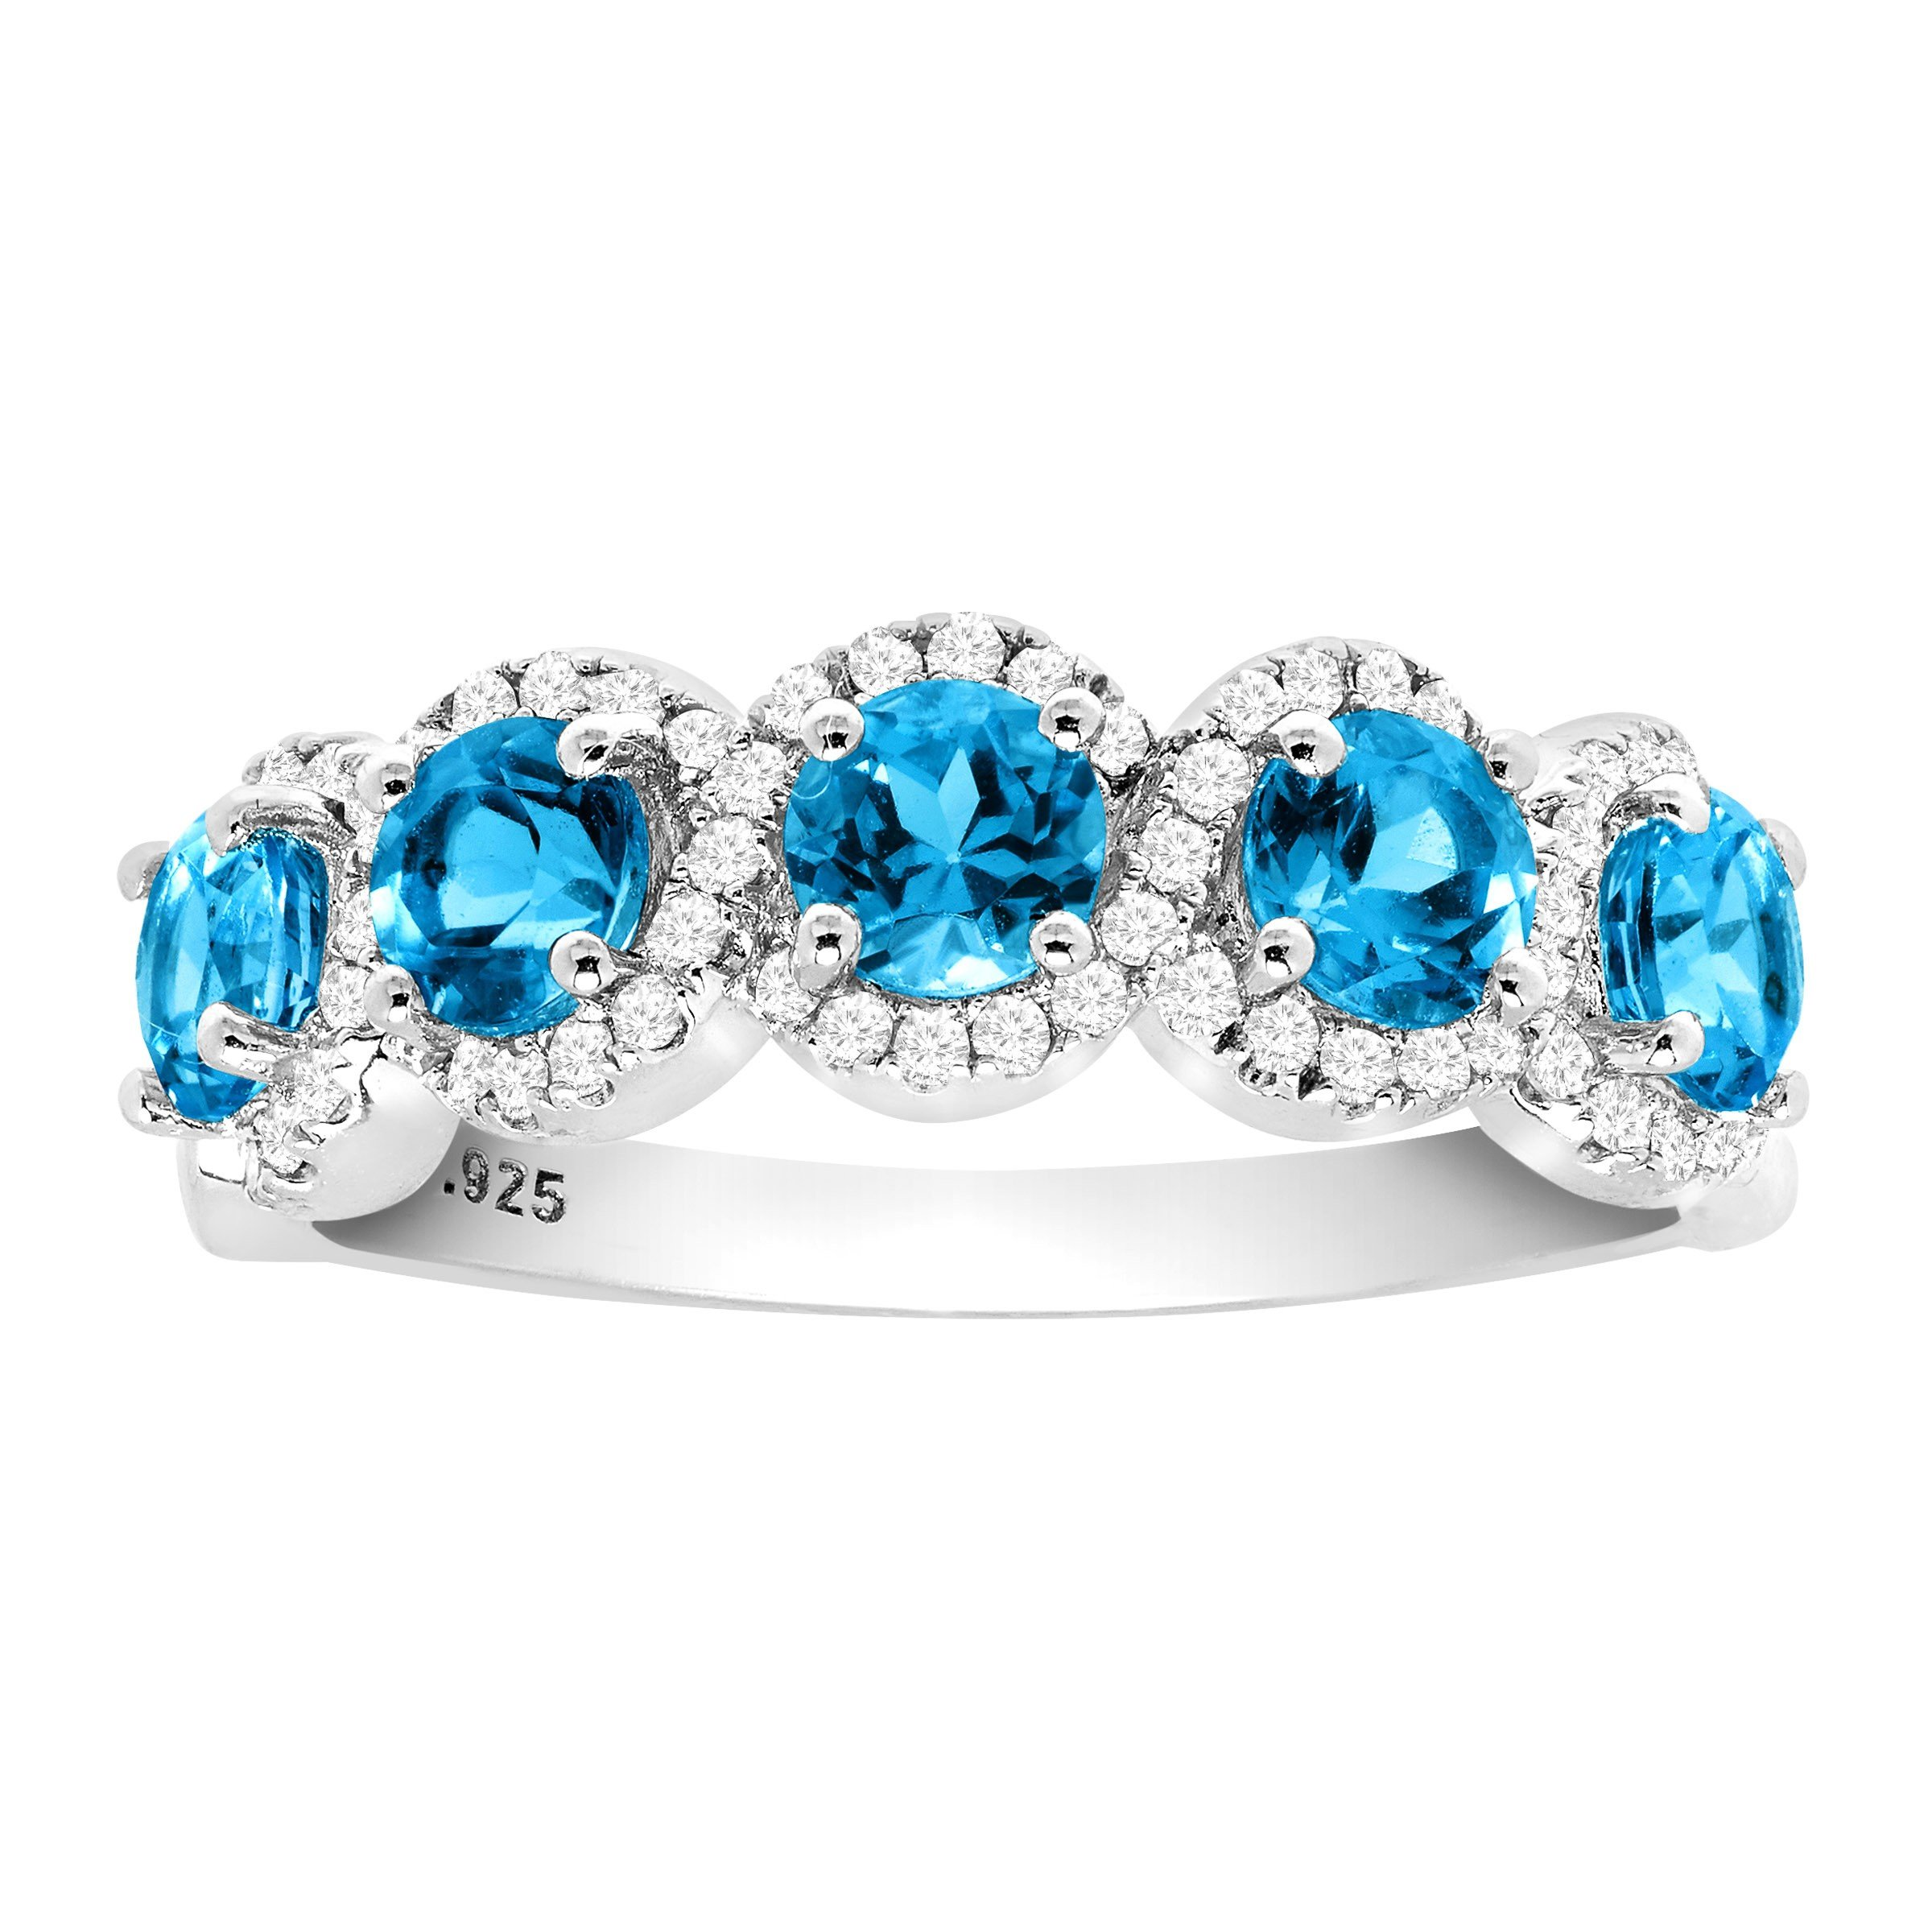 1 1/2 ct Natural Swiss Blue Topaz & 1/4 ct Diamond Band Ring in Sterling Silver Size 7